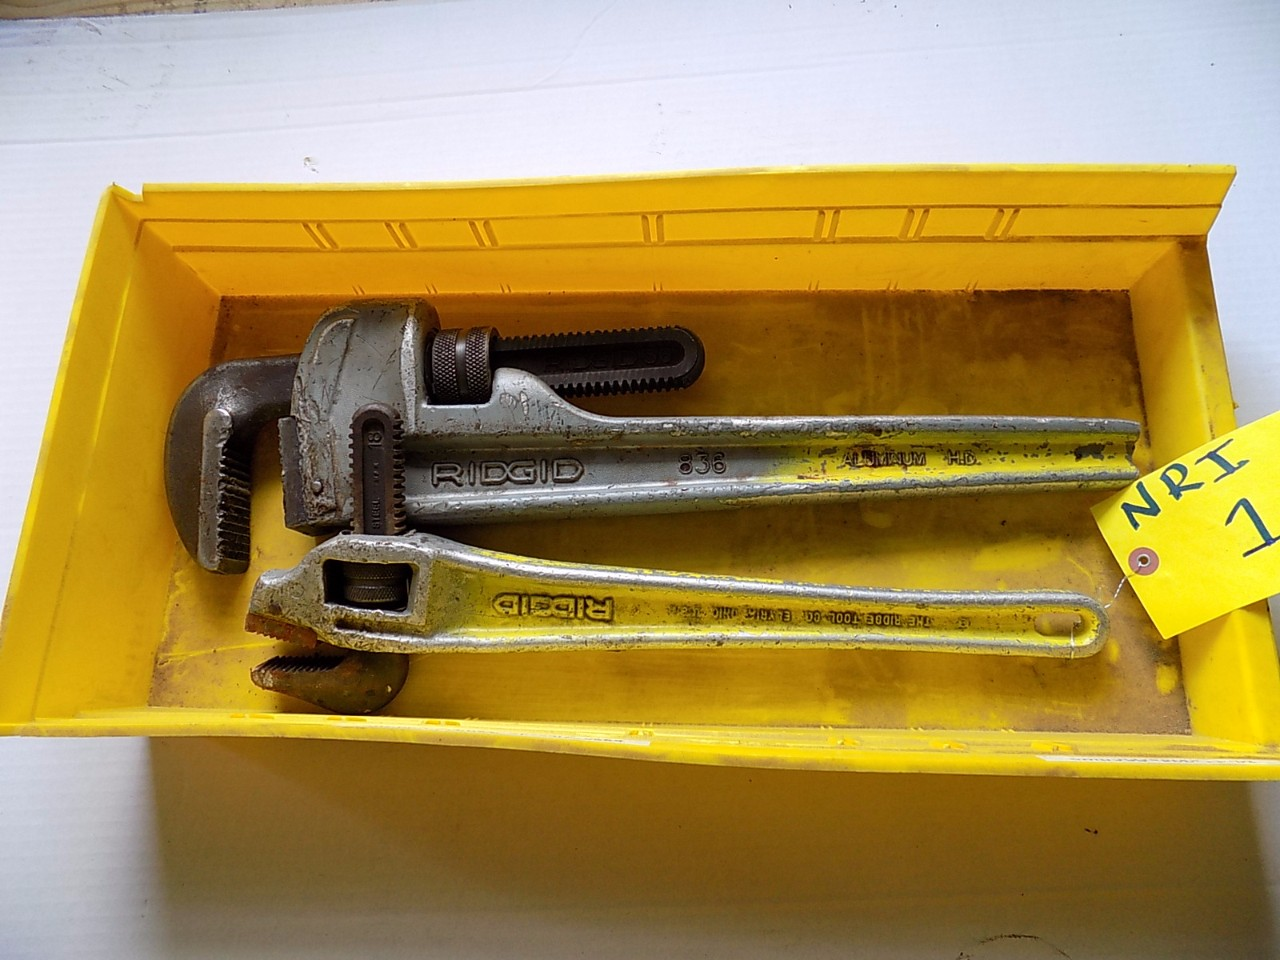 LOT OF RIGID PIPE WRENCHES